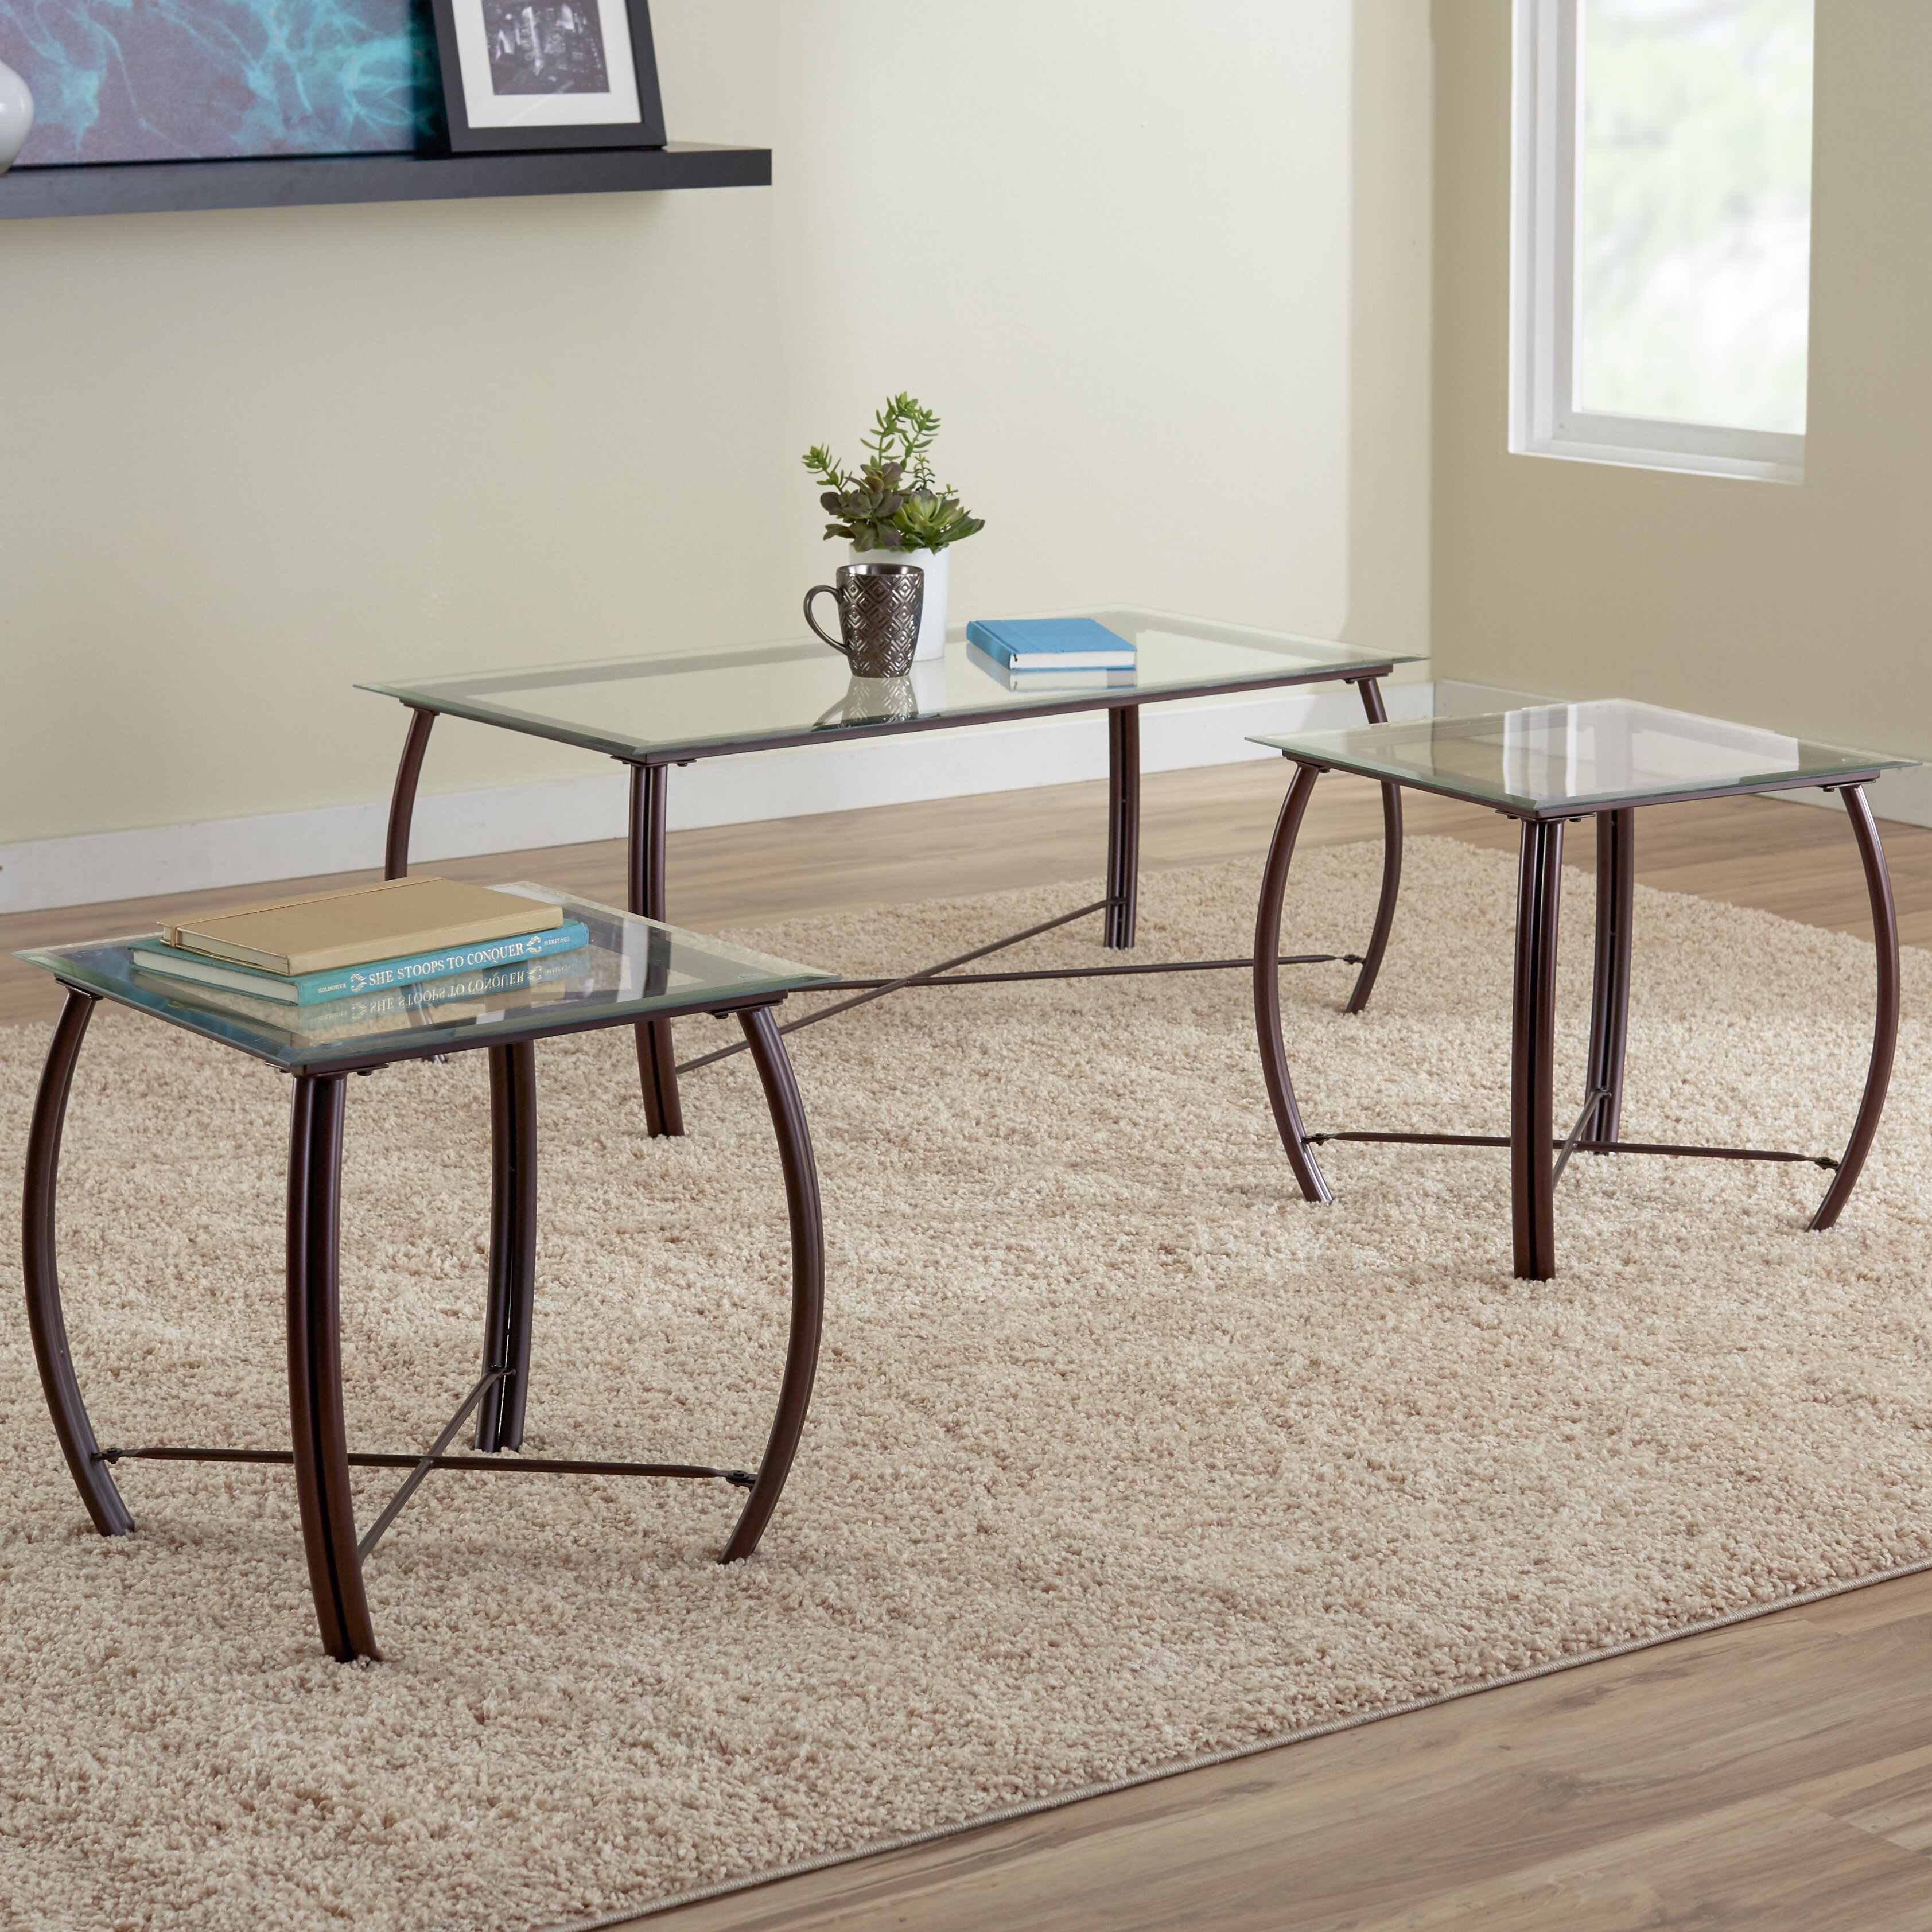 Zipcode design christina 3 piece coffee table set for Coffee tables 3 piece